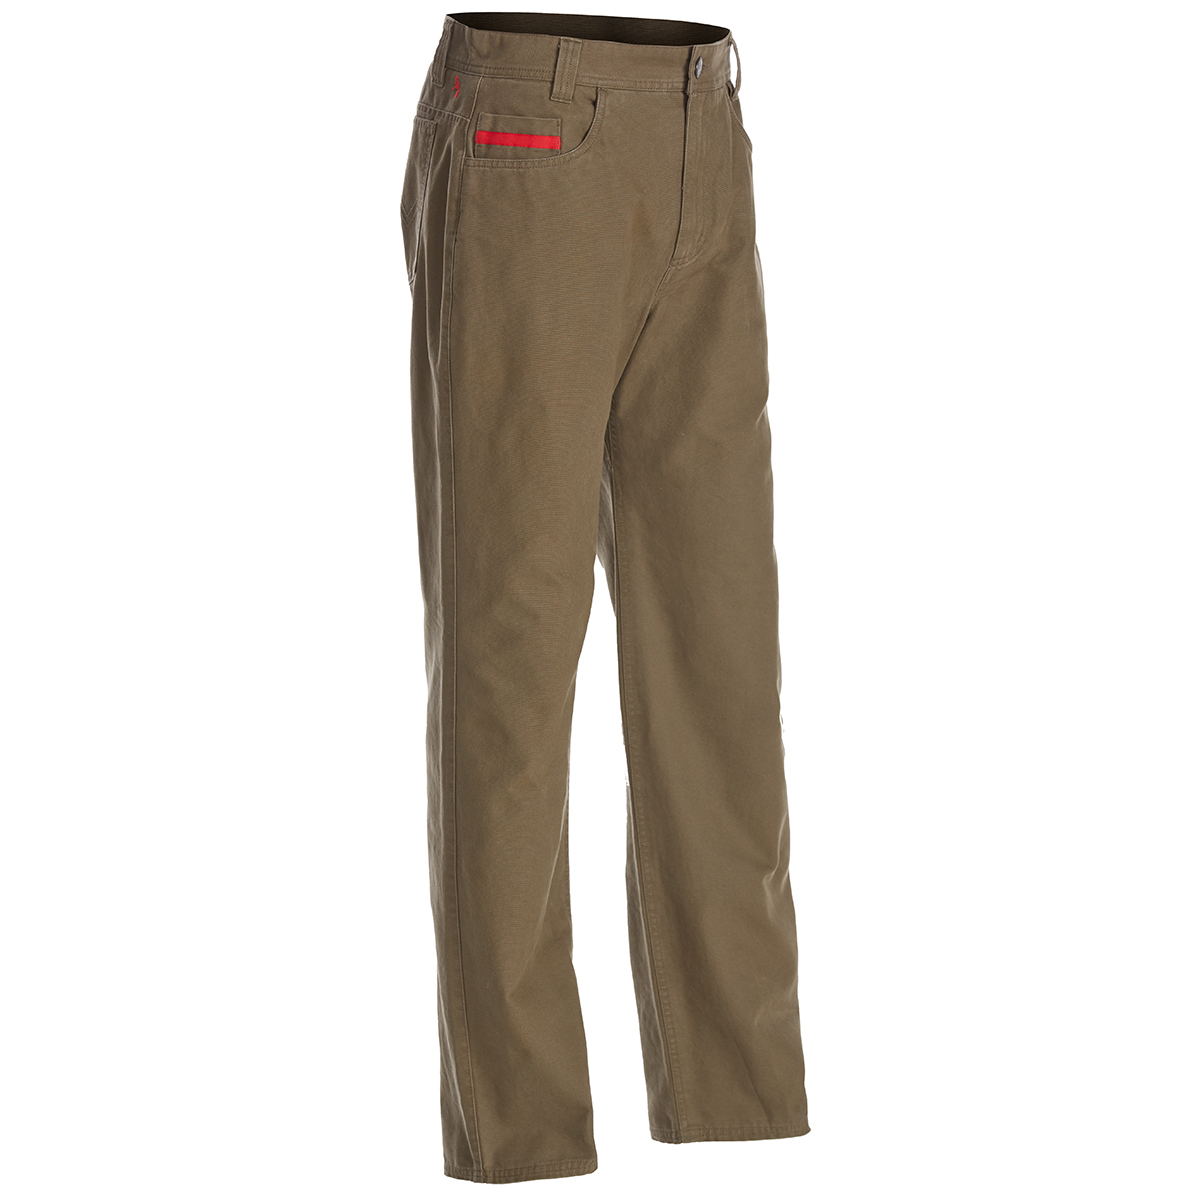 Ems Men's Ranger Flannel-Lined Pants - Brown, 40/32